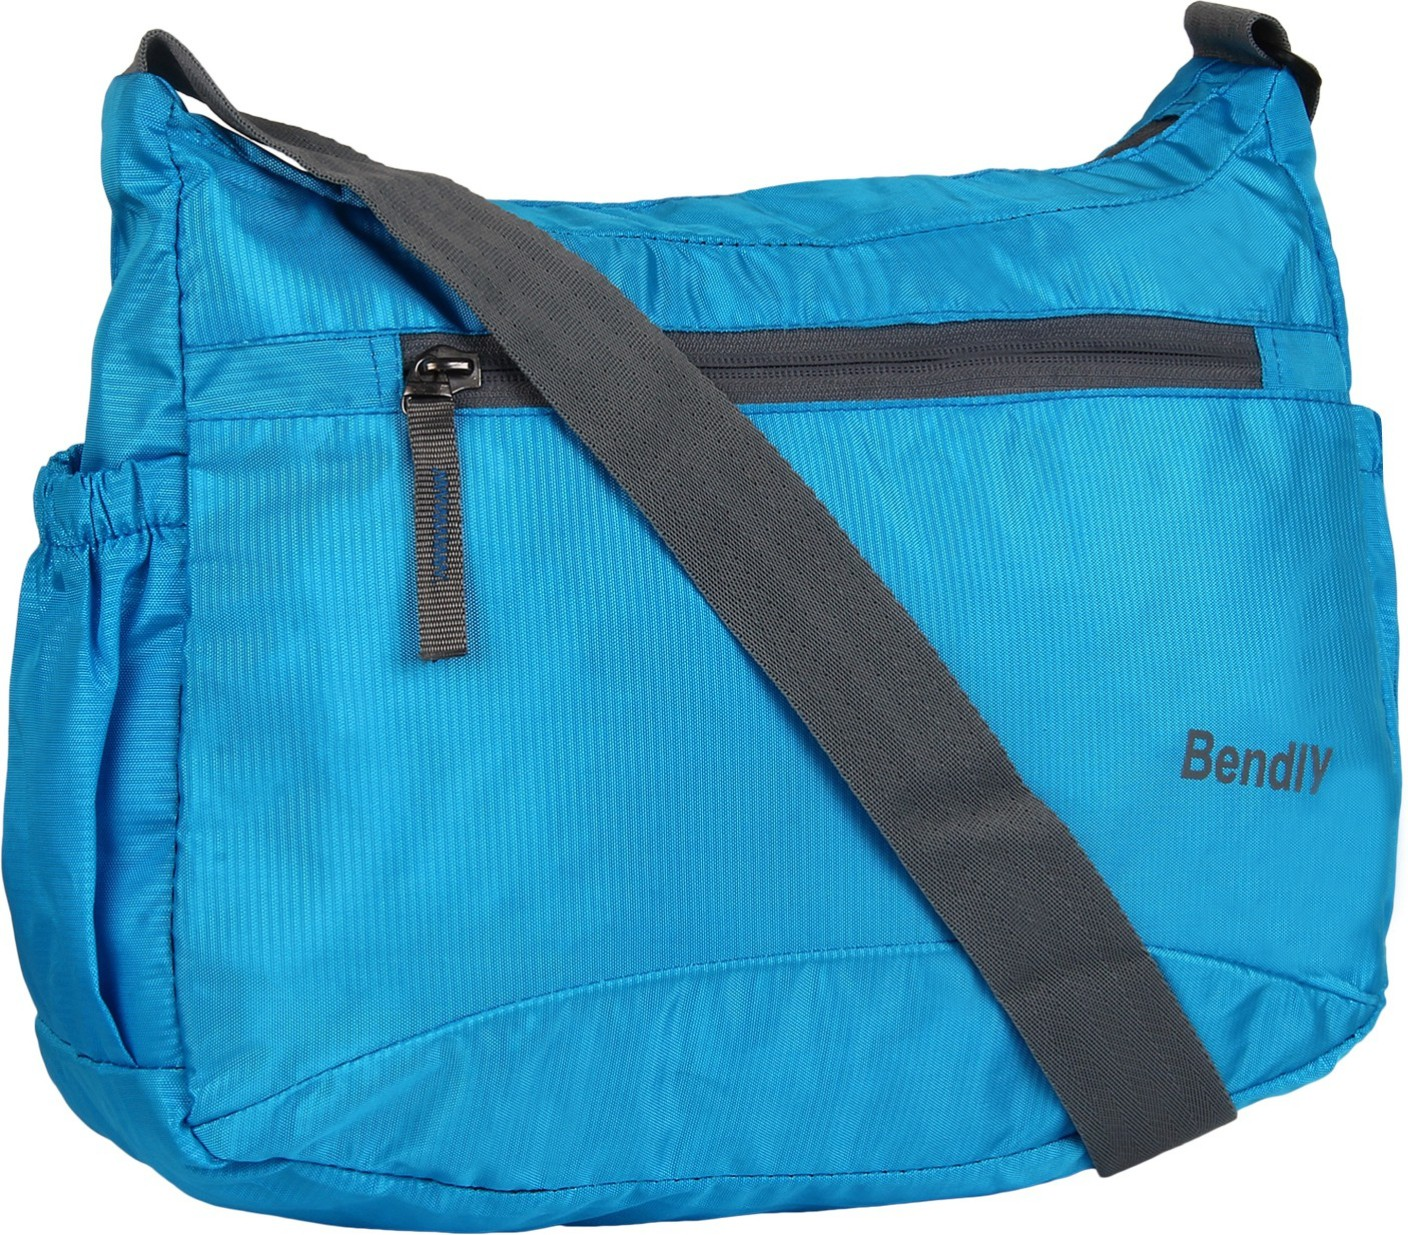 Gym Bag Flipkart: Bendly Men Casual Blue Polyester Sling Bag Blue-01